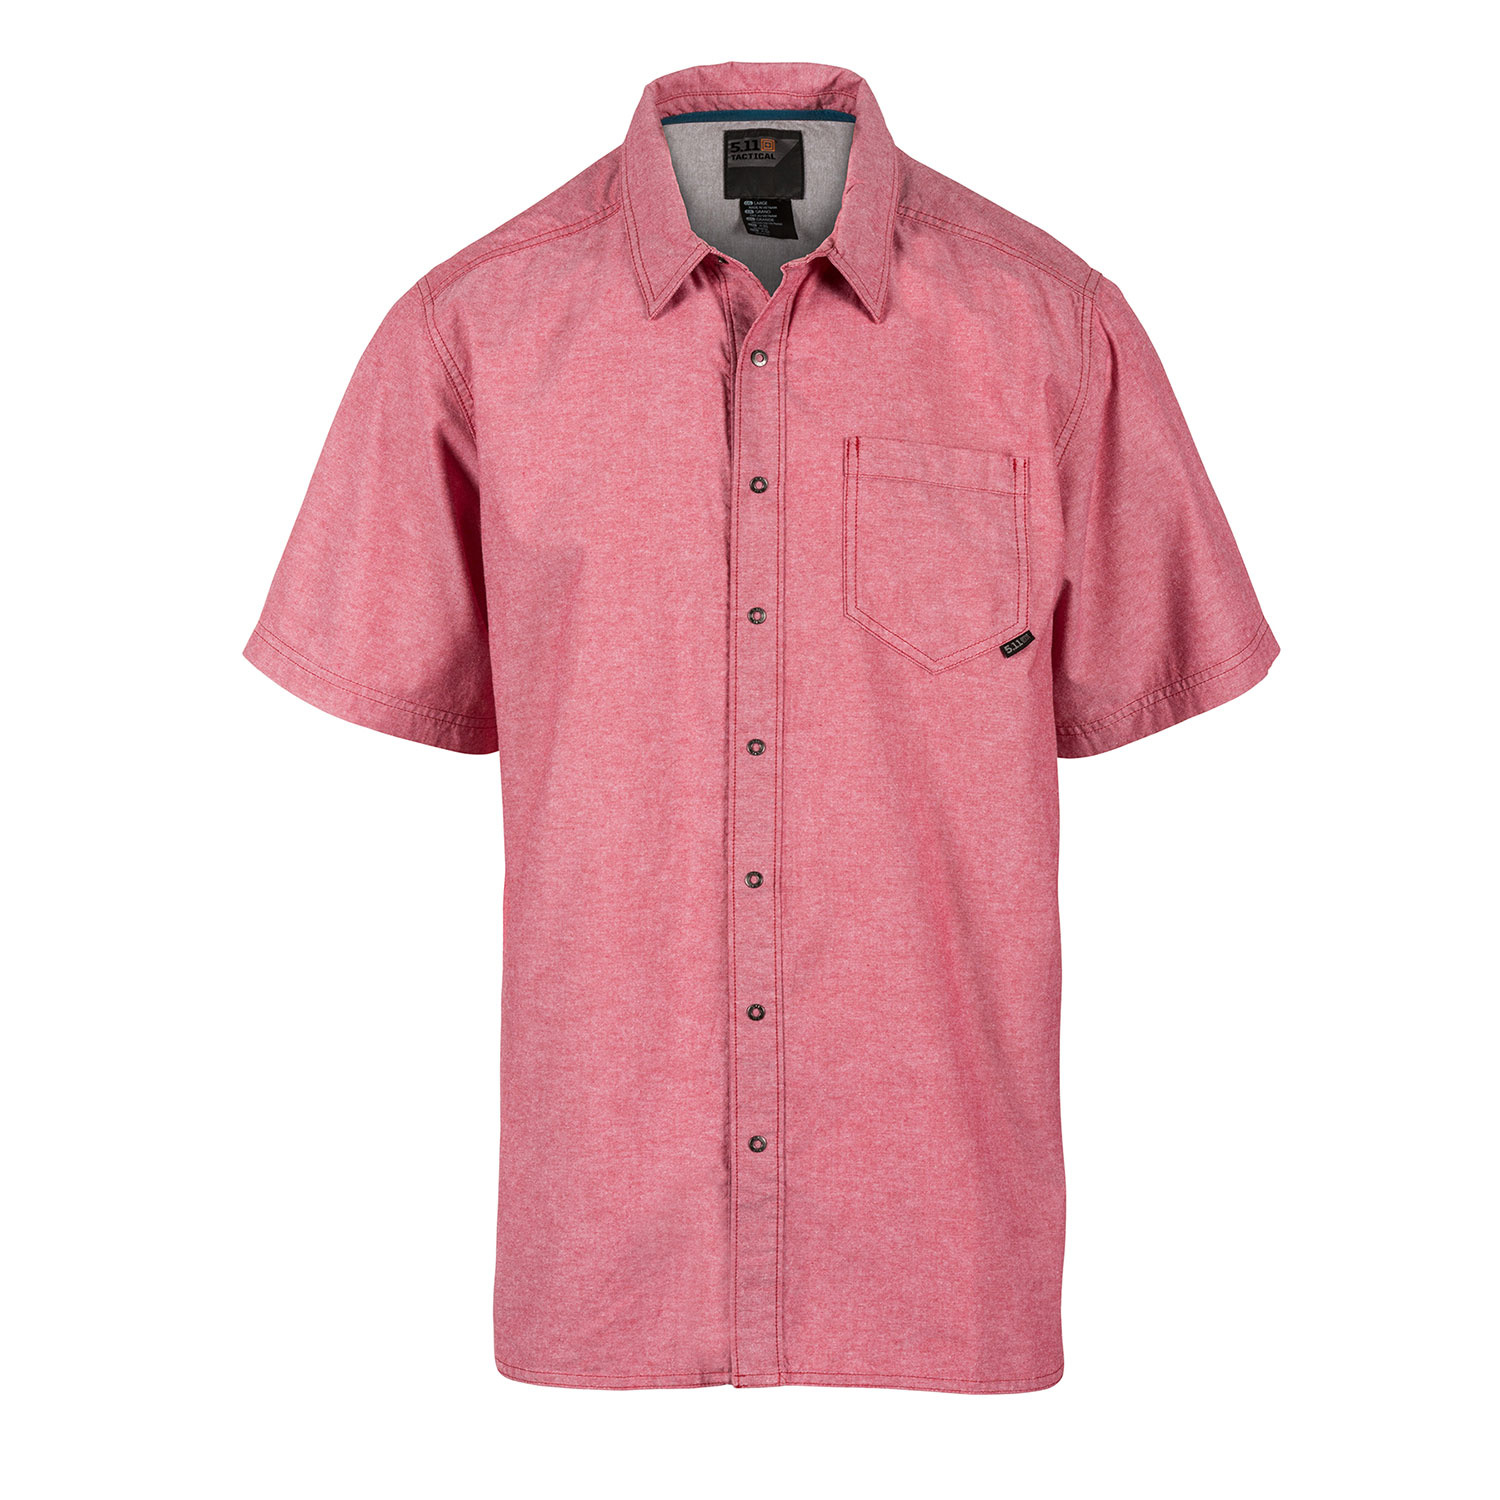 5.11 Ares Short Sleeve Shirt